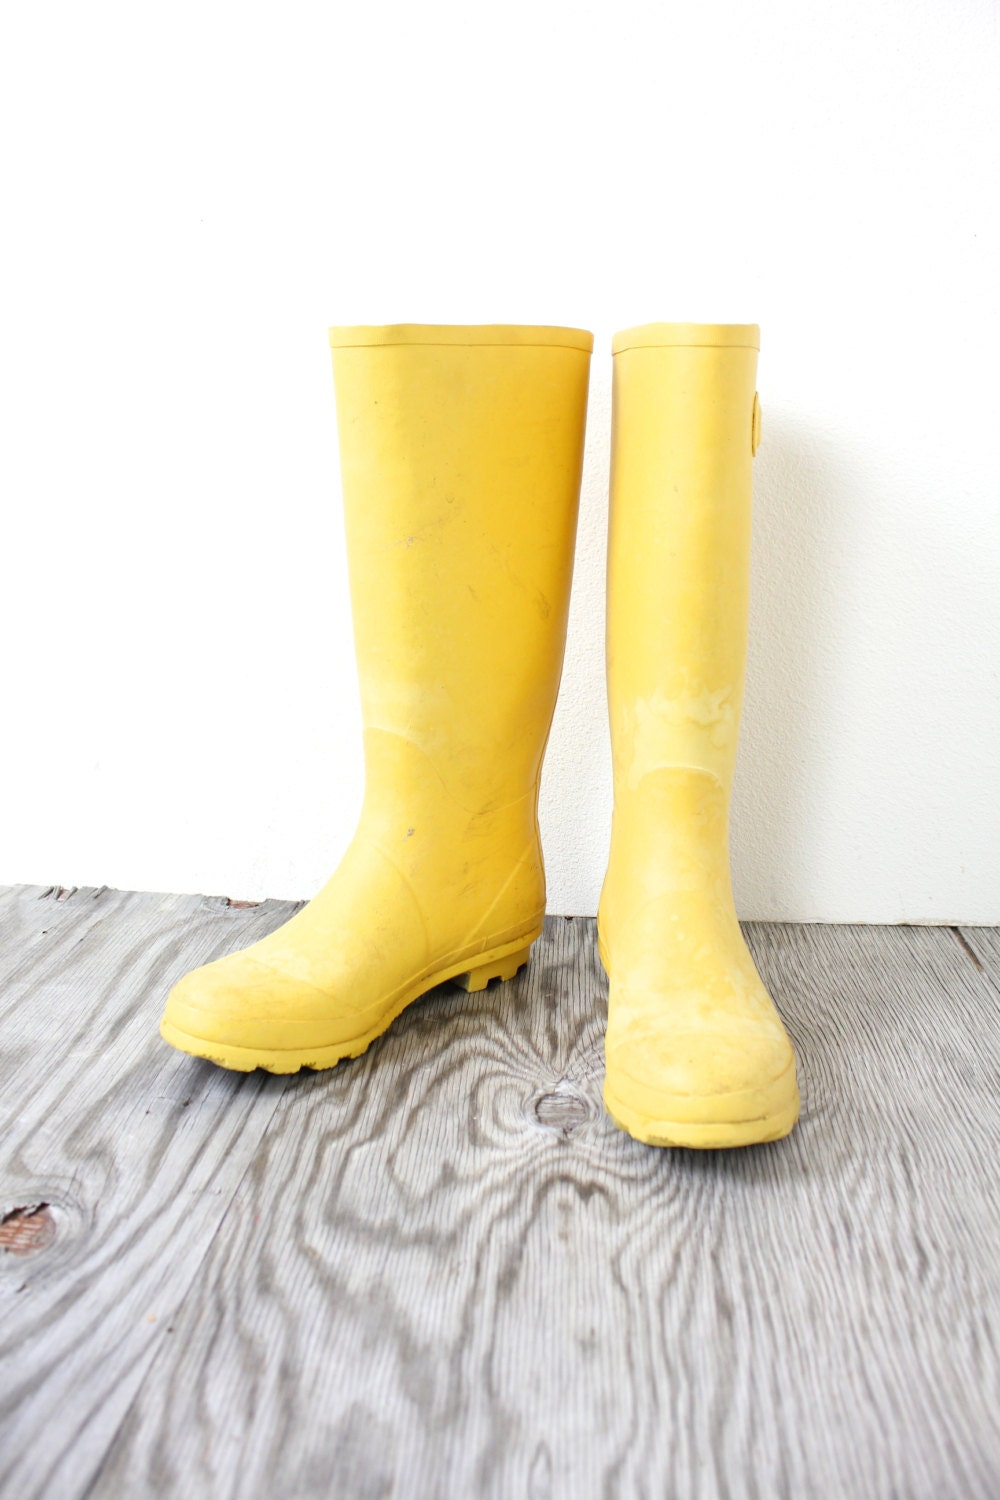 30 cool yellow rain boots womens shoes sobatapkcom